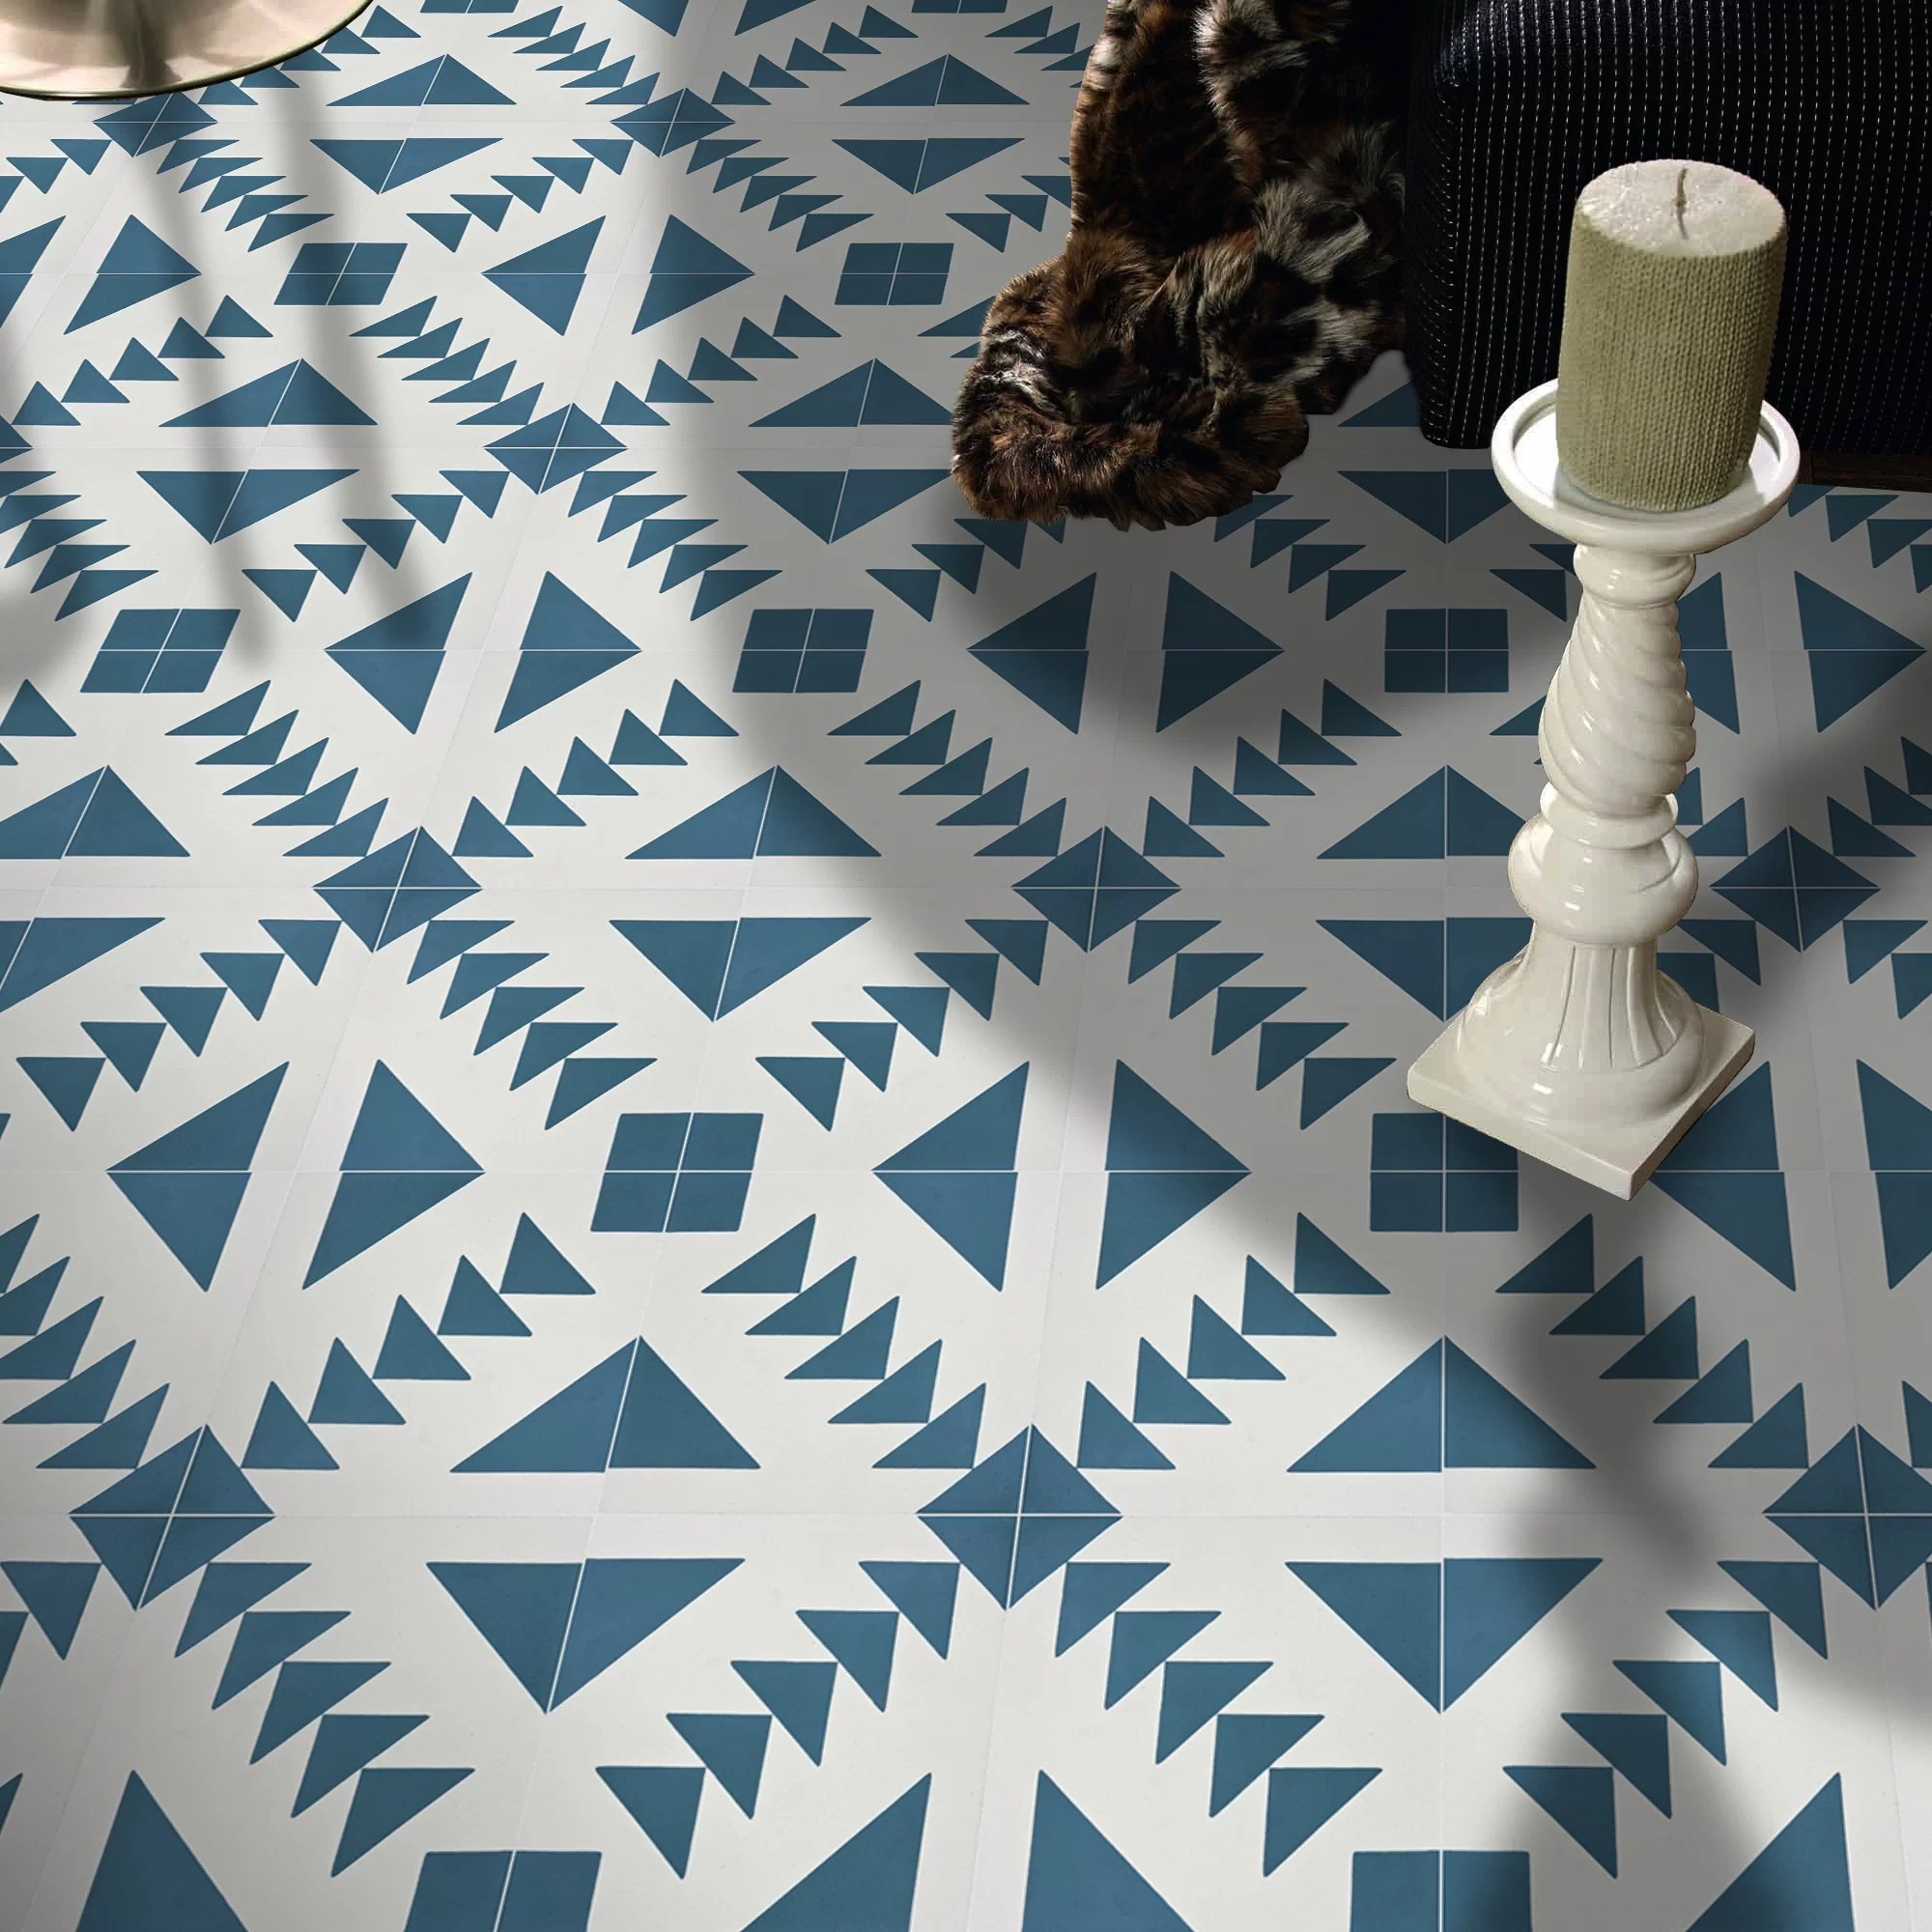 tadla 8 x 8 cement patterned wall floor tile